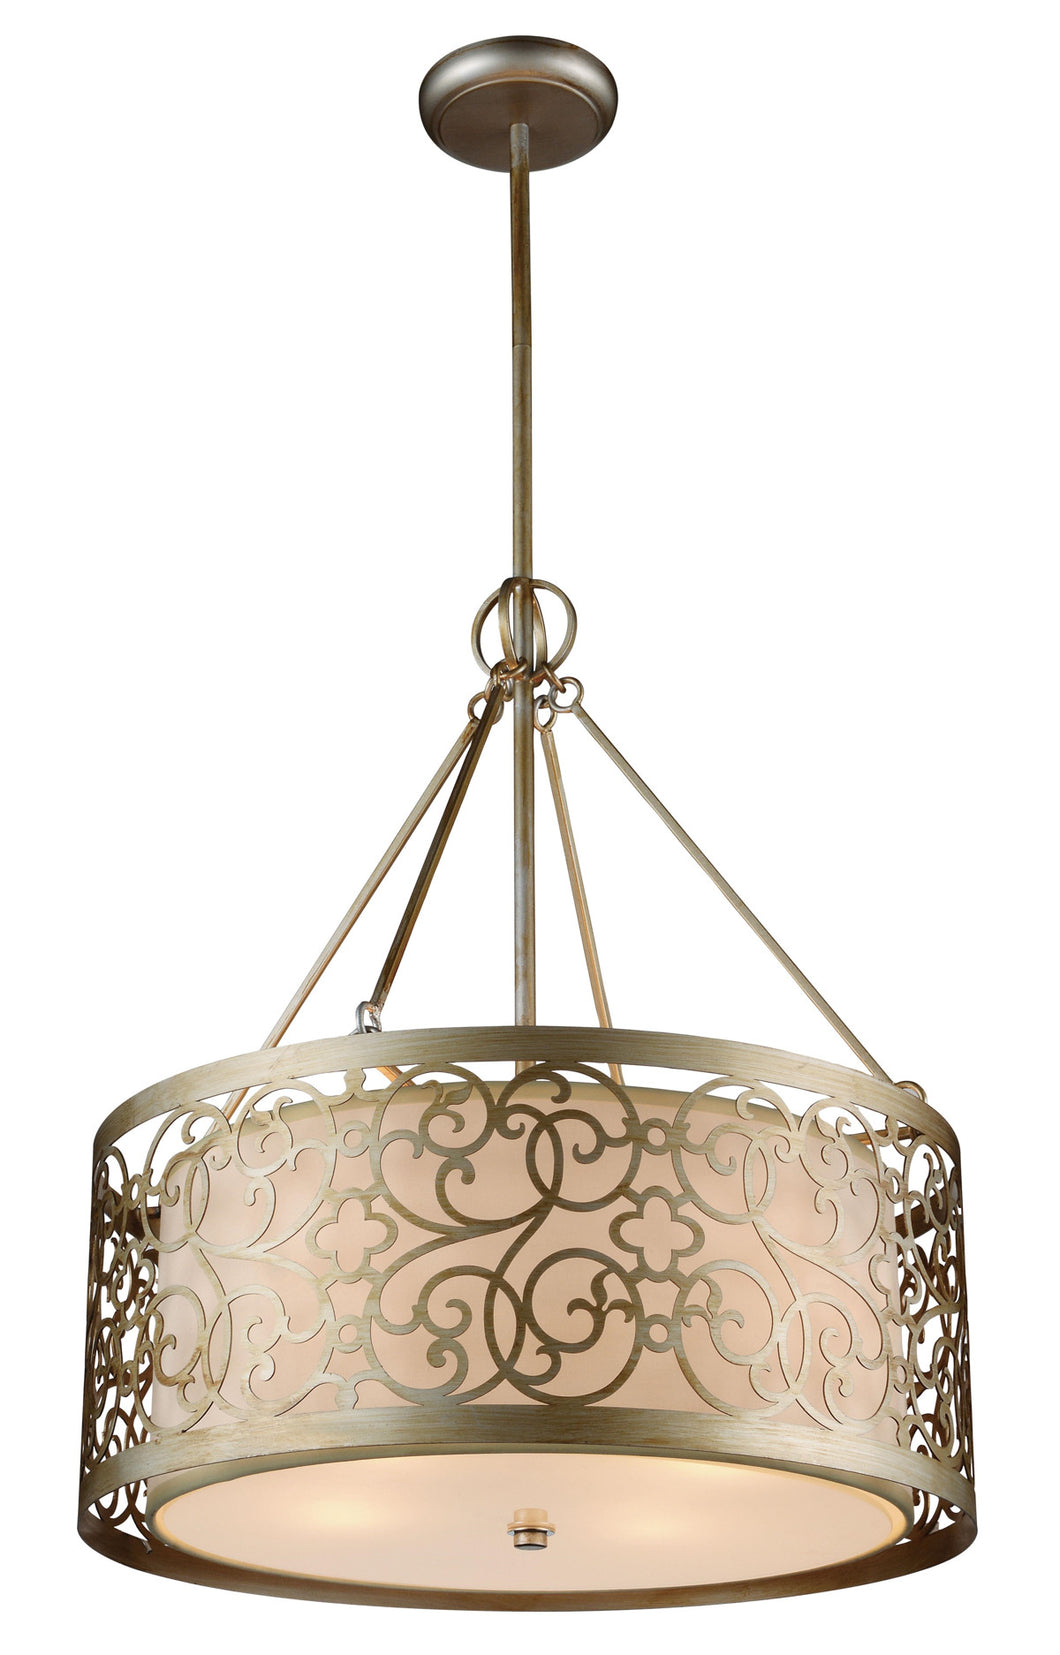 5 Light Drum Shade Chandelier with Rubbed Silver finish